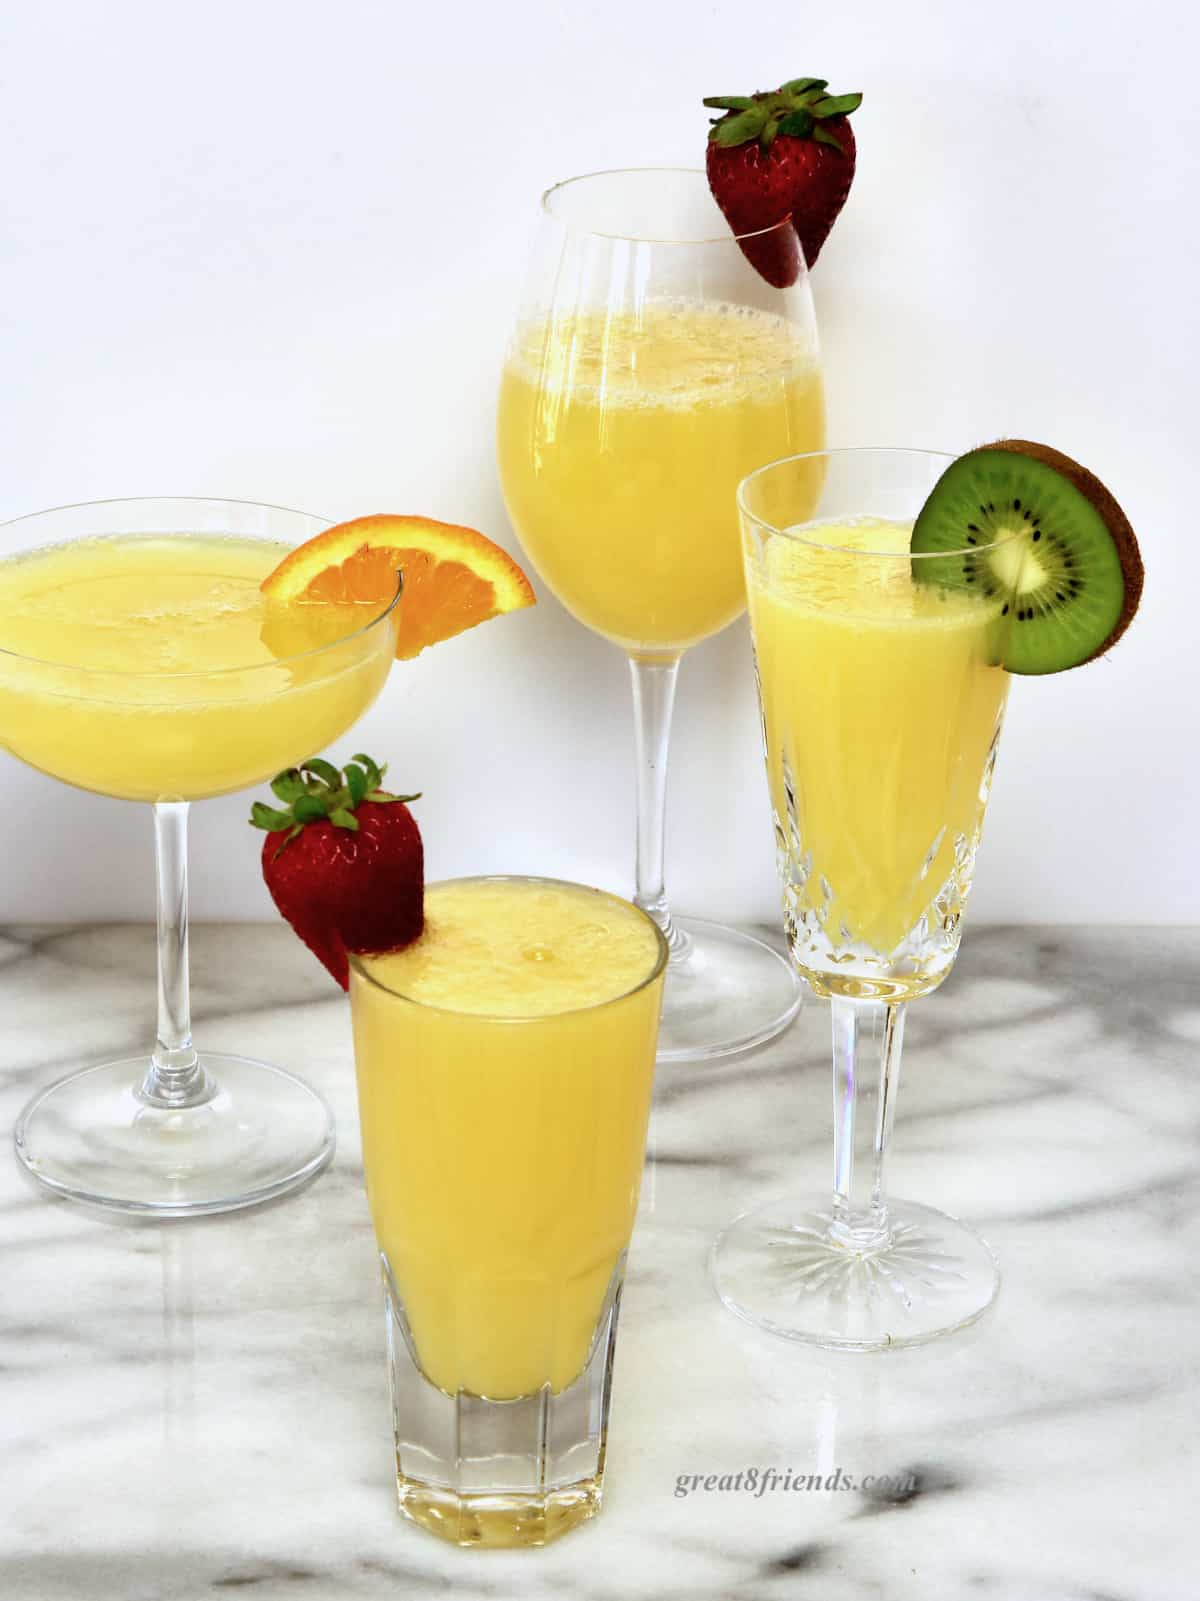 Four mimosas each in a different glass; one wine glass garnished with a strawberry, one coupe glass garnished with an orange slice, one flute garnished with a slice of kiwi, one juice glass garnished with a strawberry.